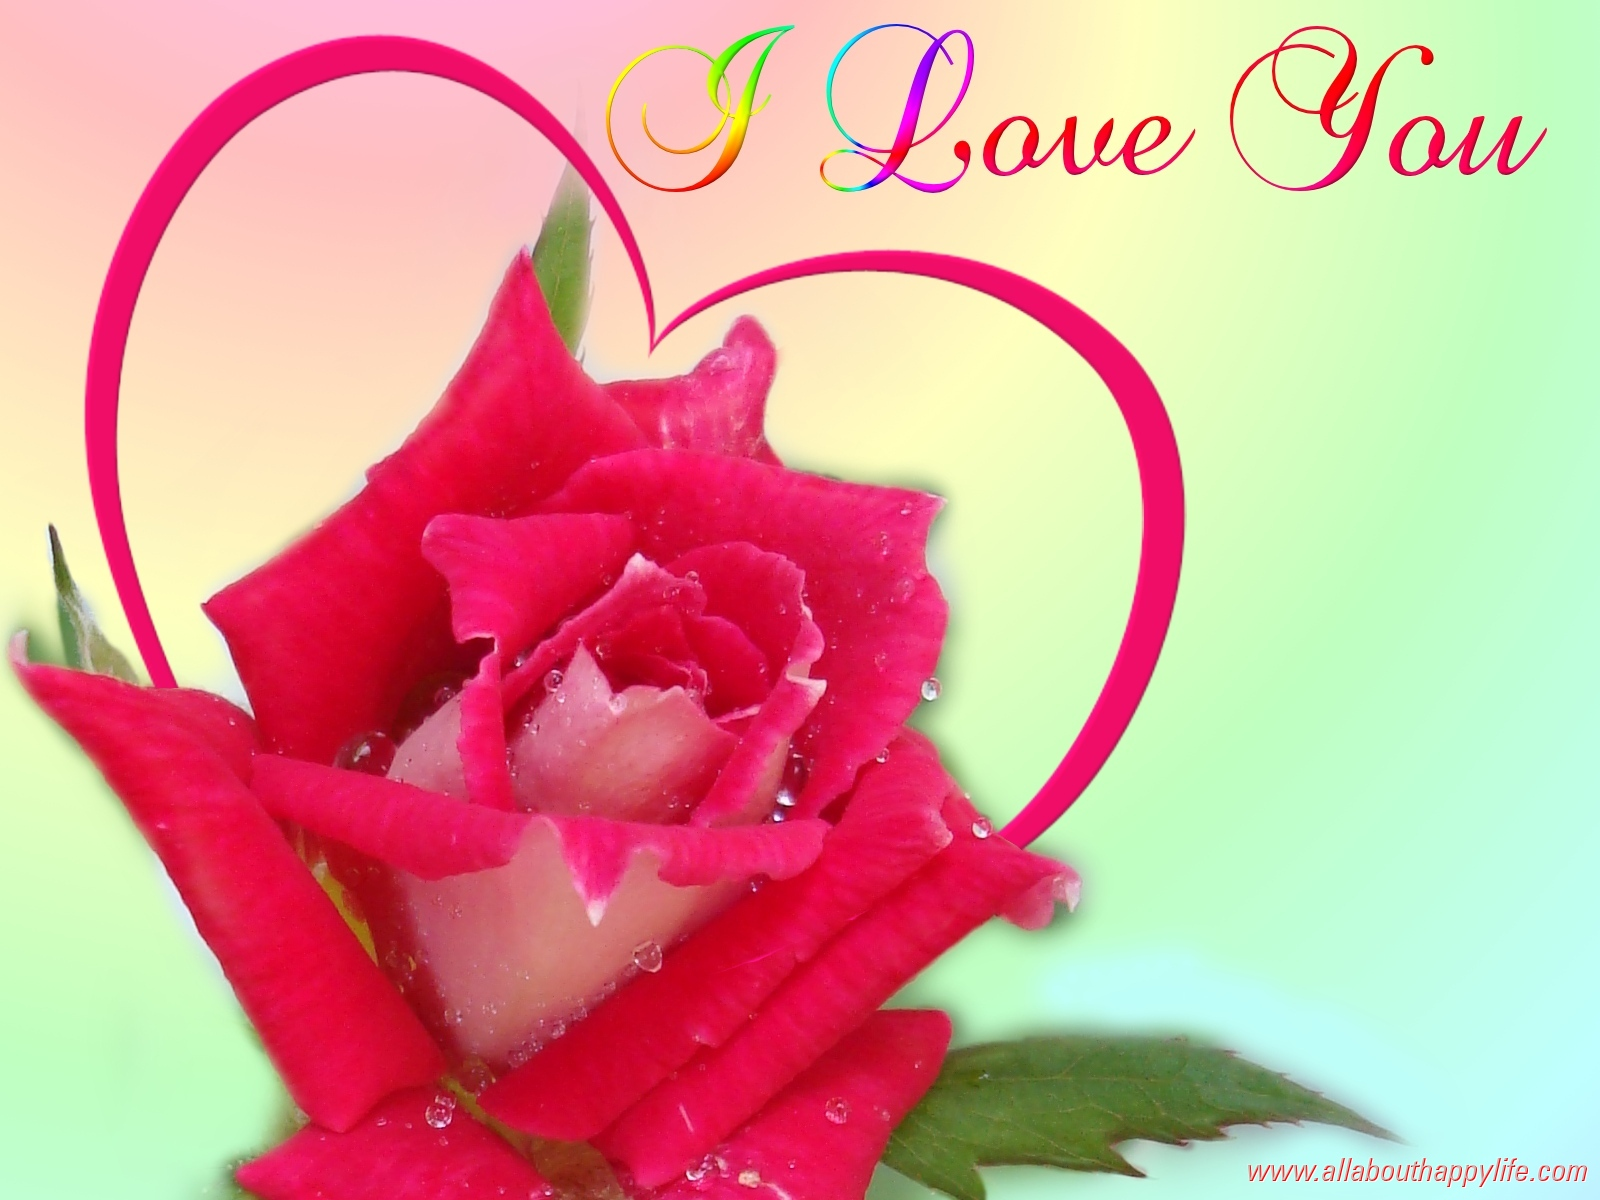 knumathise red rose i love you wallpaper images